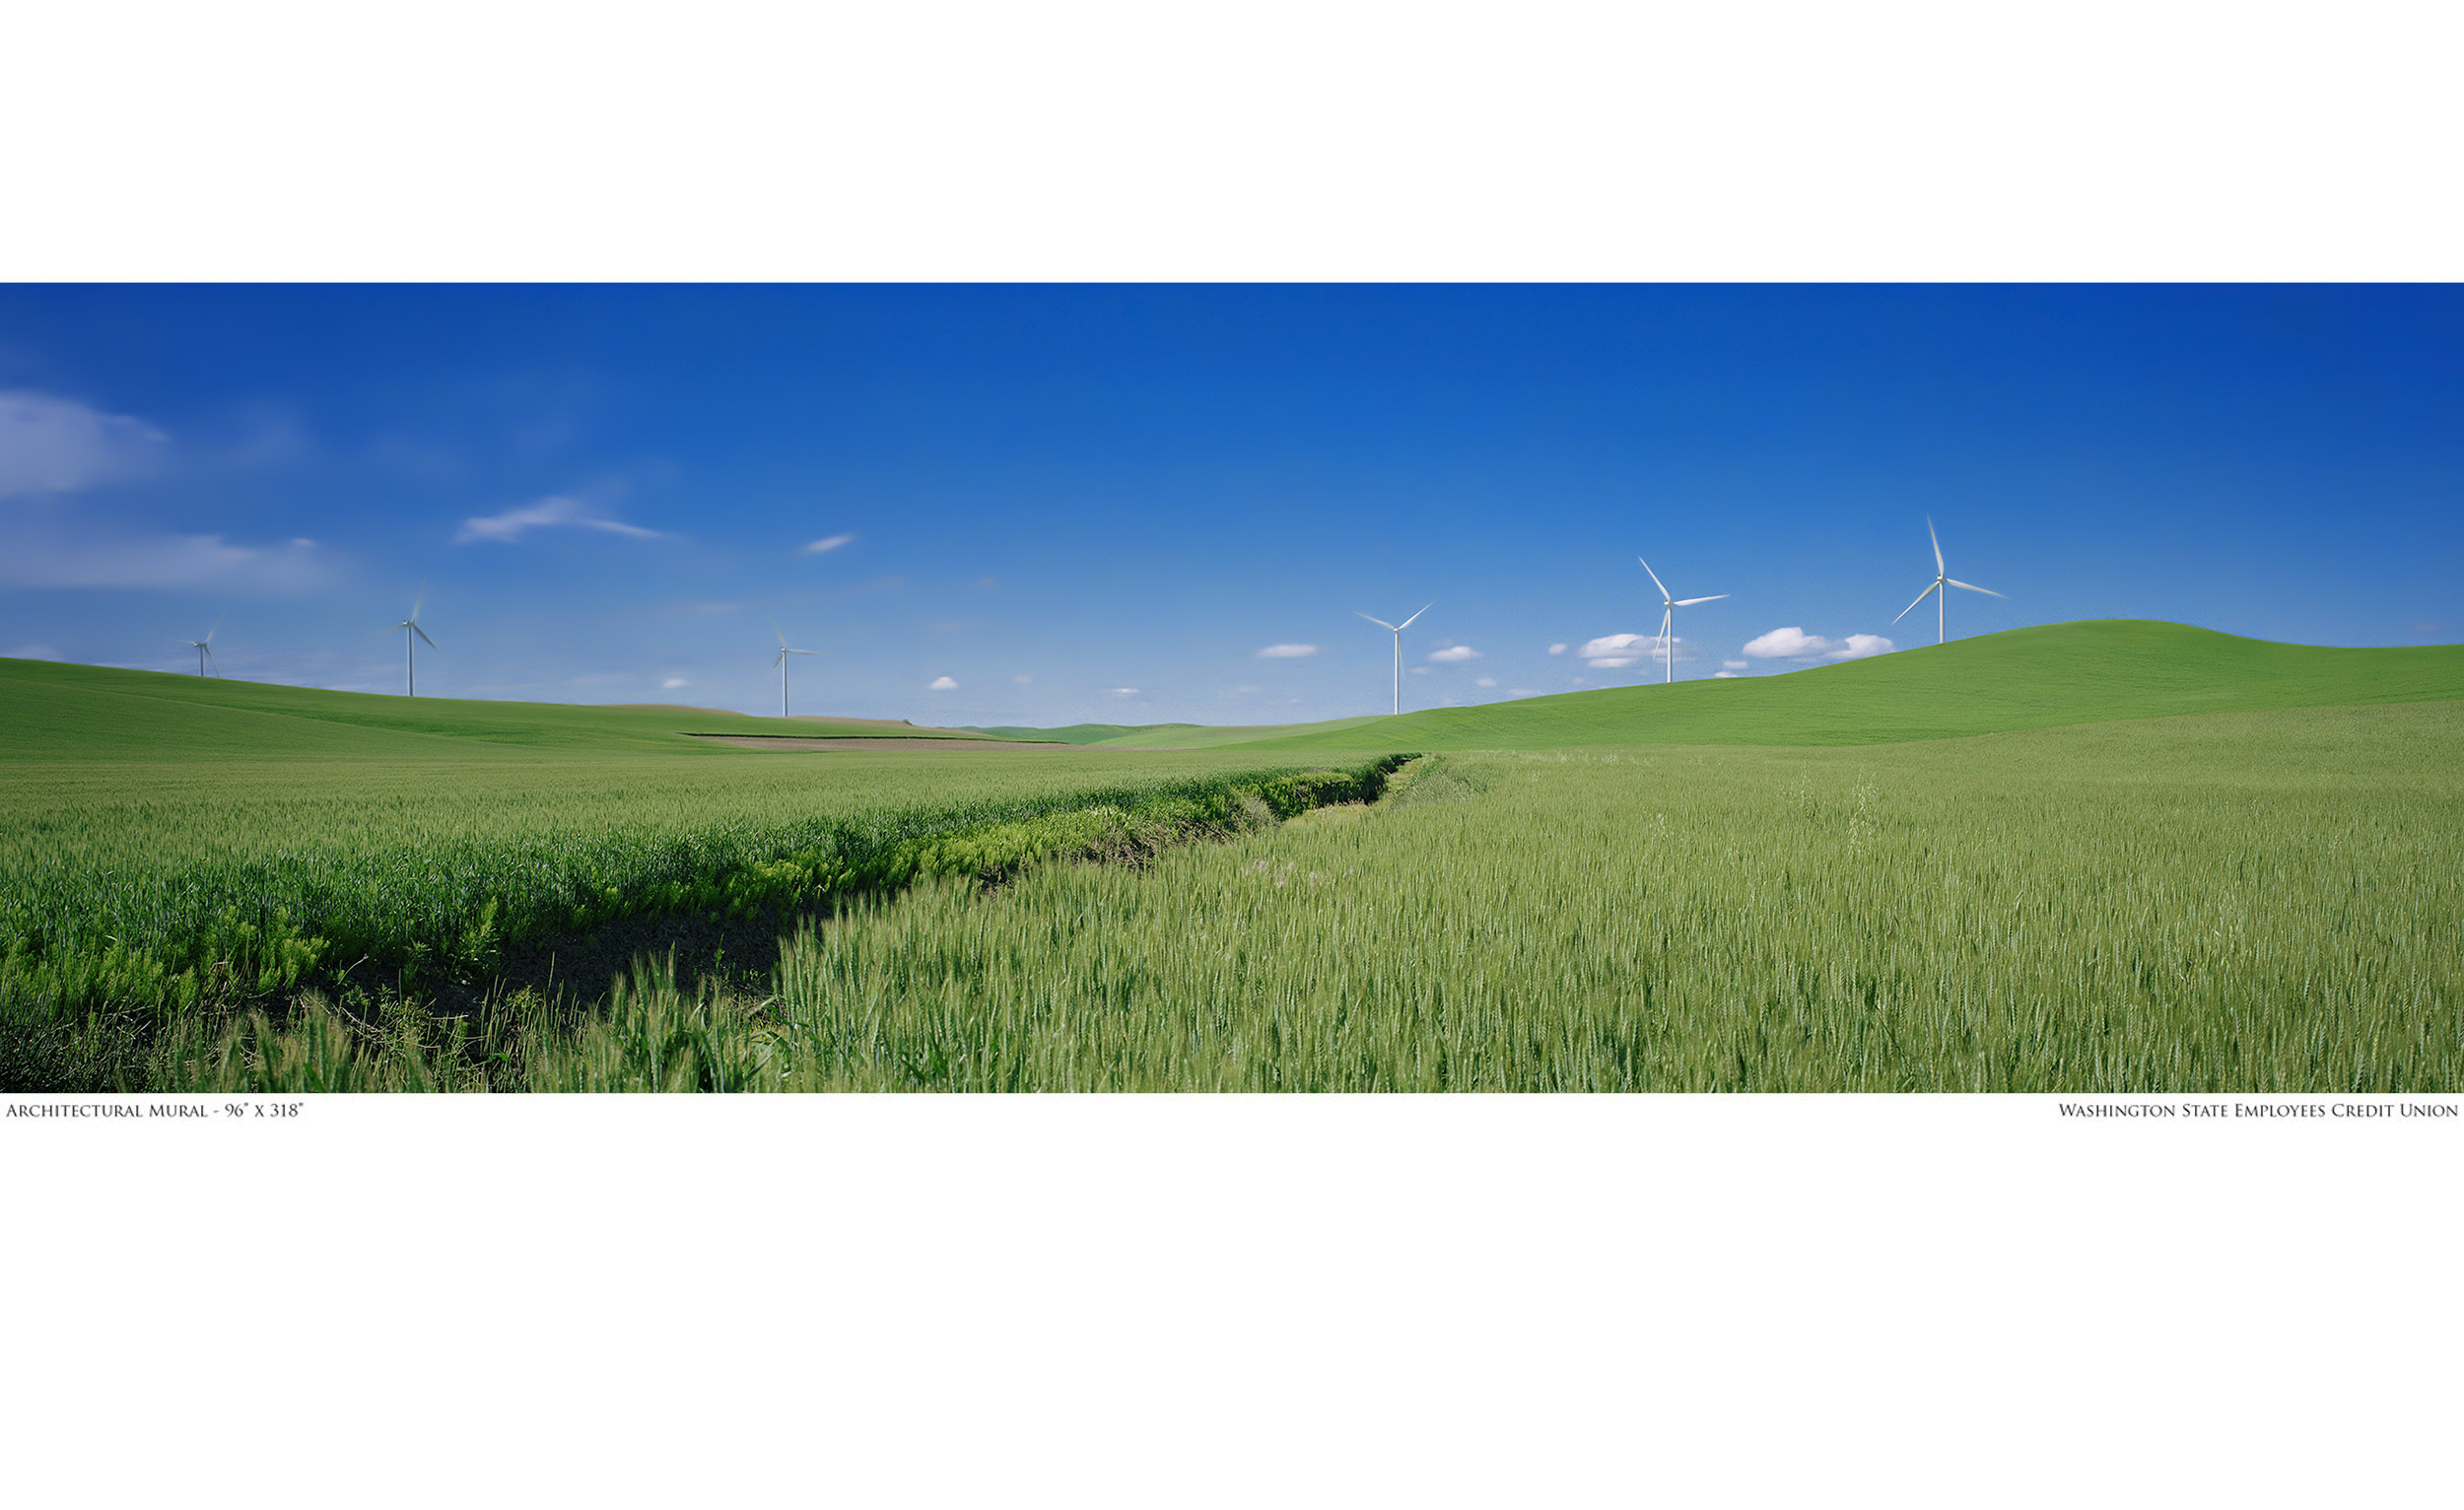 WSECU - Branch Mural - Palouse Wind Farm